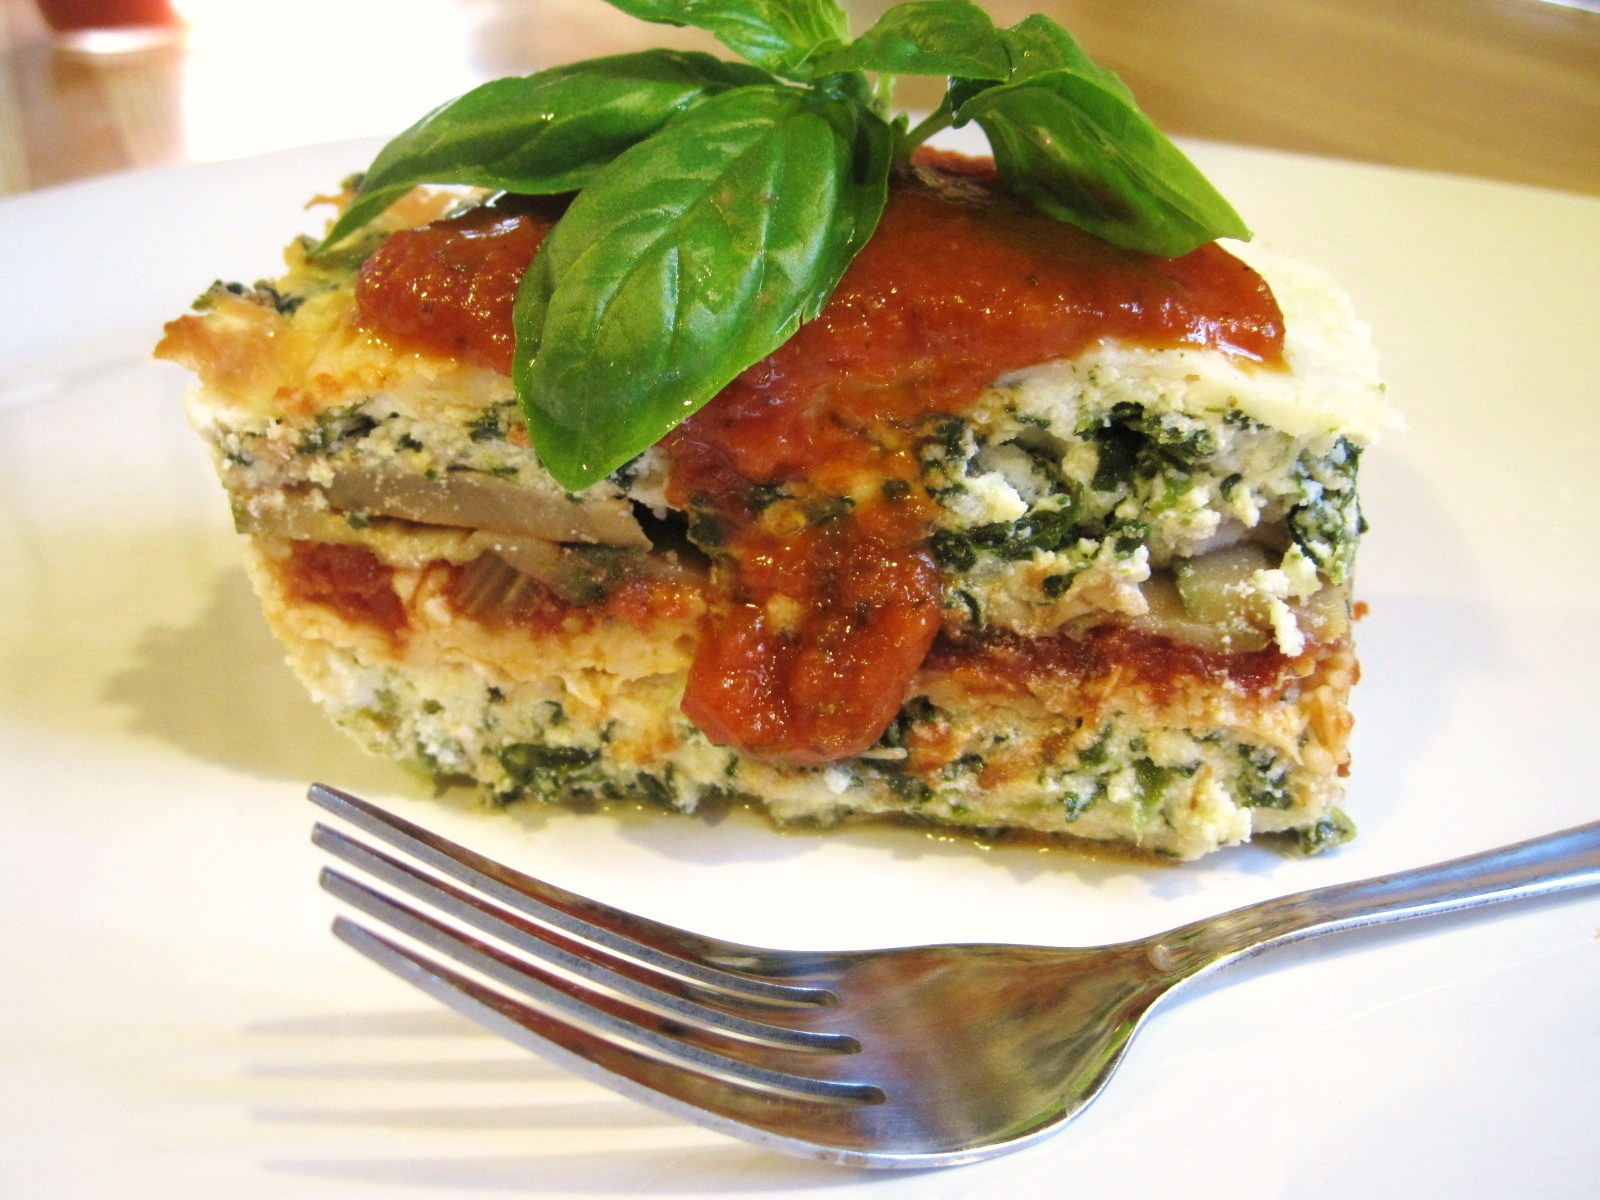 Nickel's Worth of News: Very Veggie Lasagna